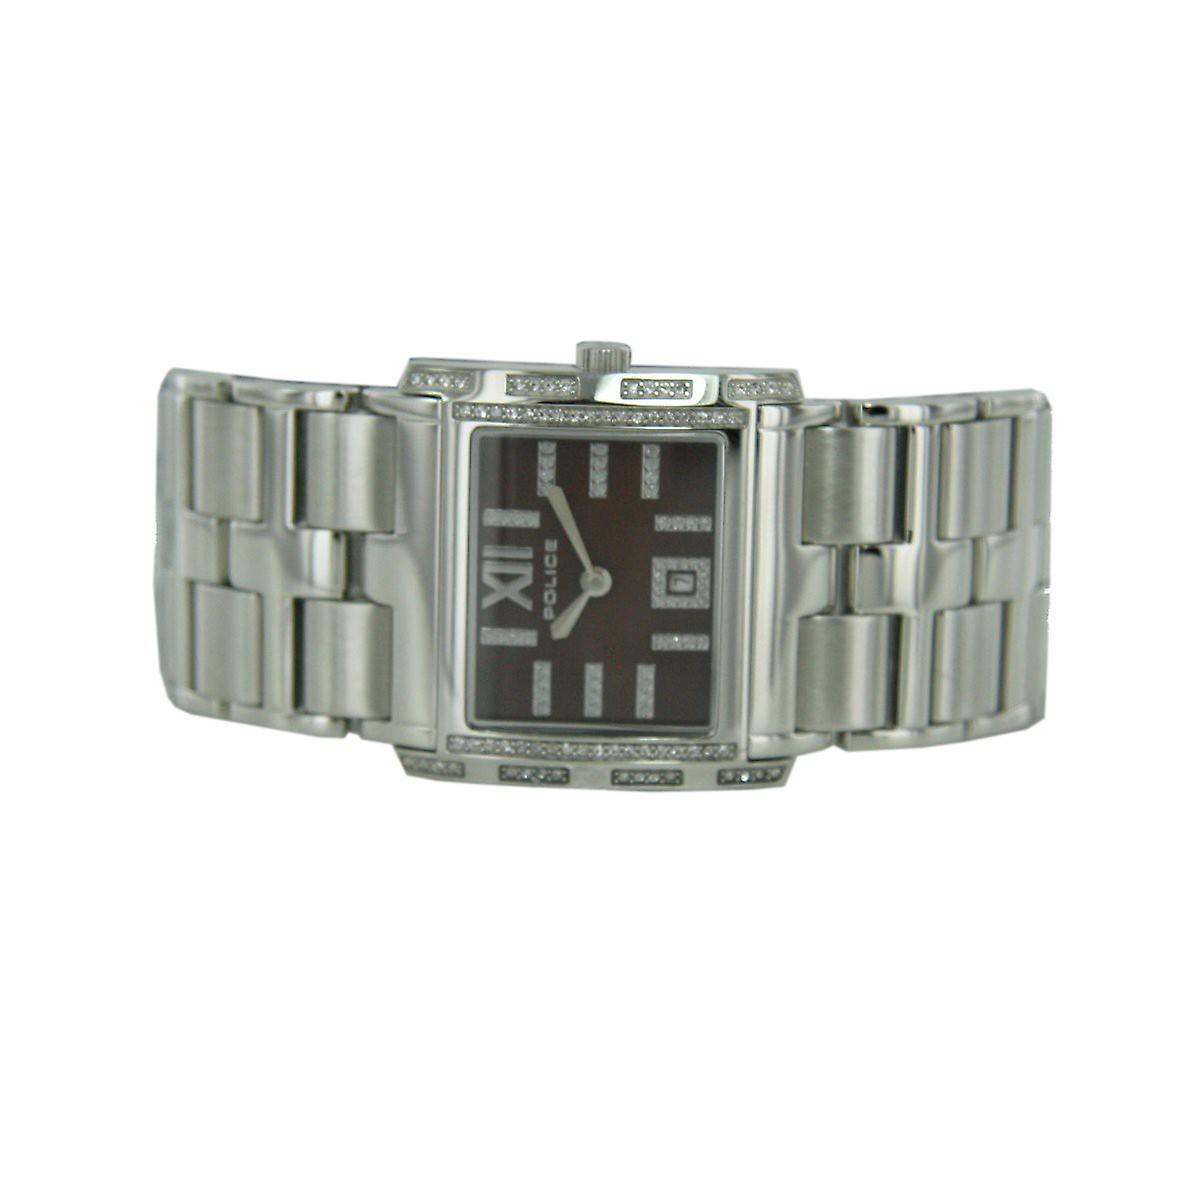 Police ladies watch wristwatch stainless steel analog Belle PL. 11183BS / 40 M